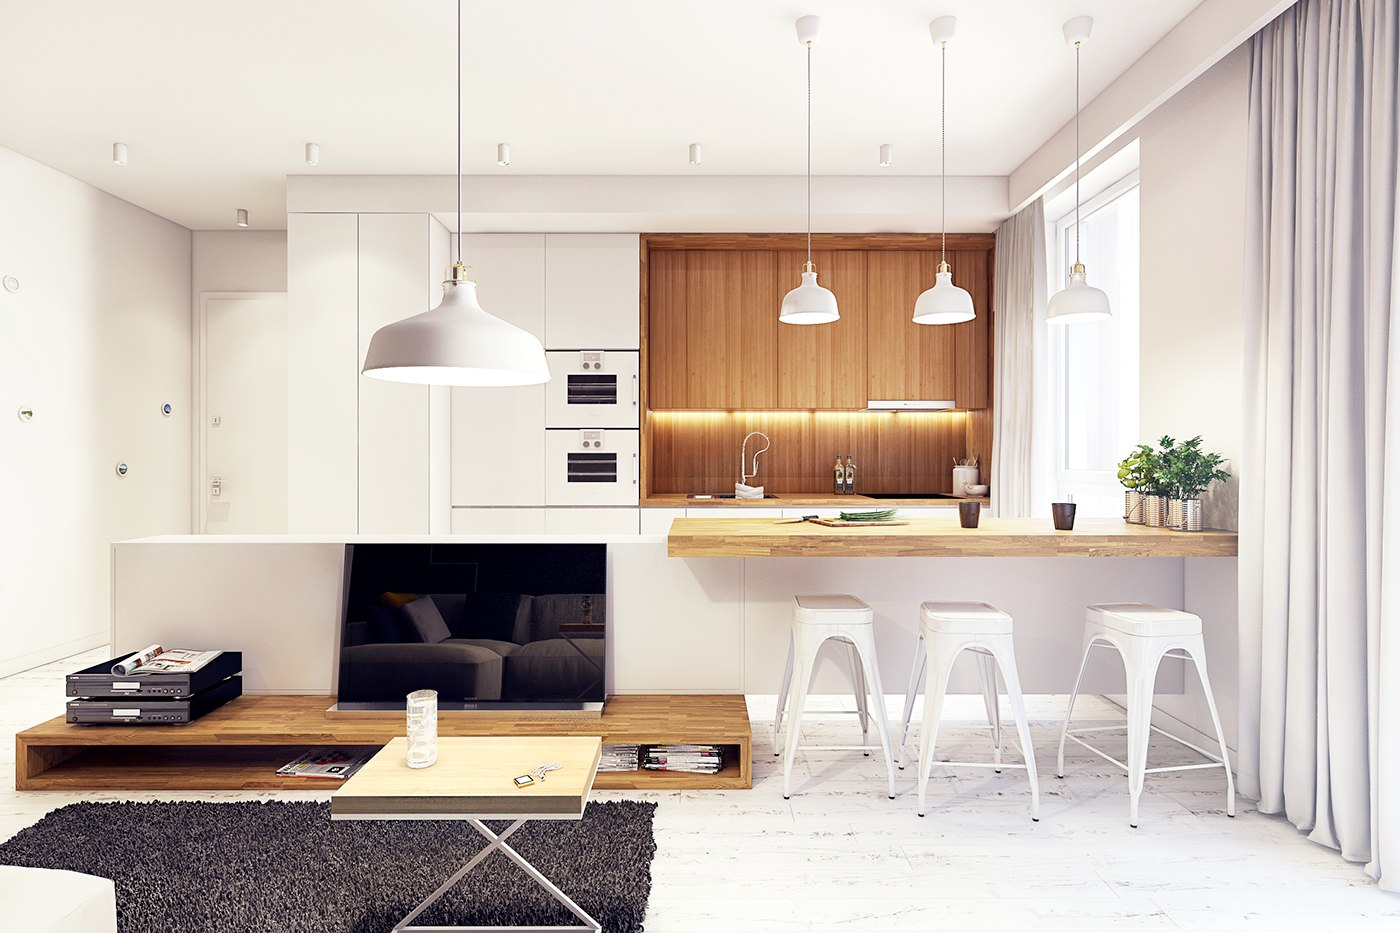 Modern white and wood kitchen designs - Modern White And Wood Kitchen Designs 32